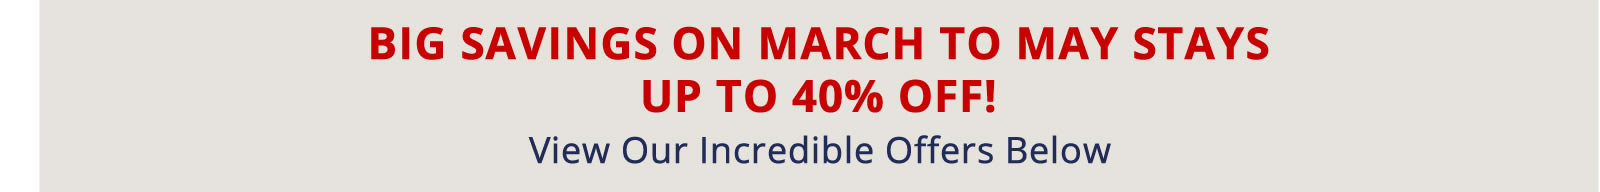 Book Now for Big Savings on March to May Stays. Up to 40% off!